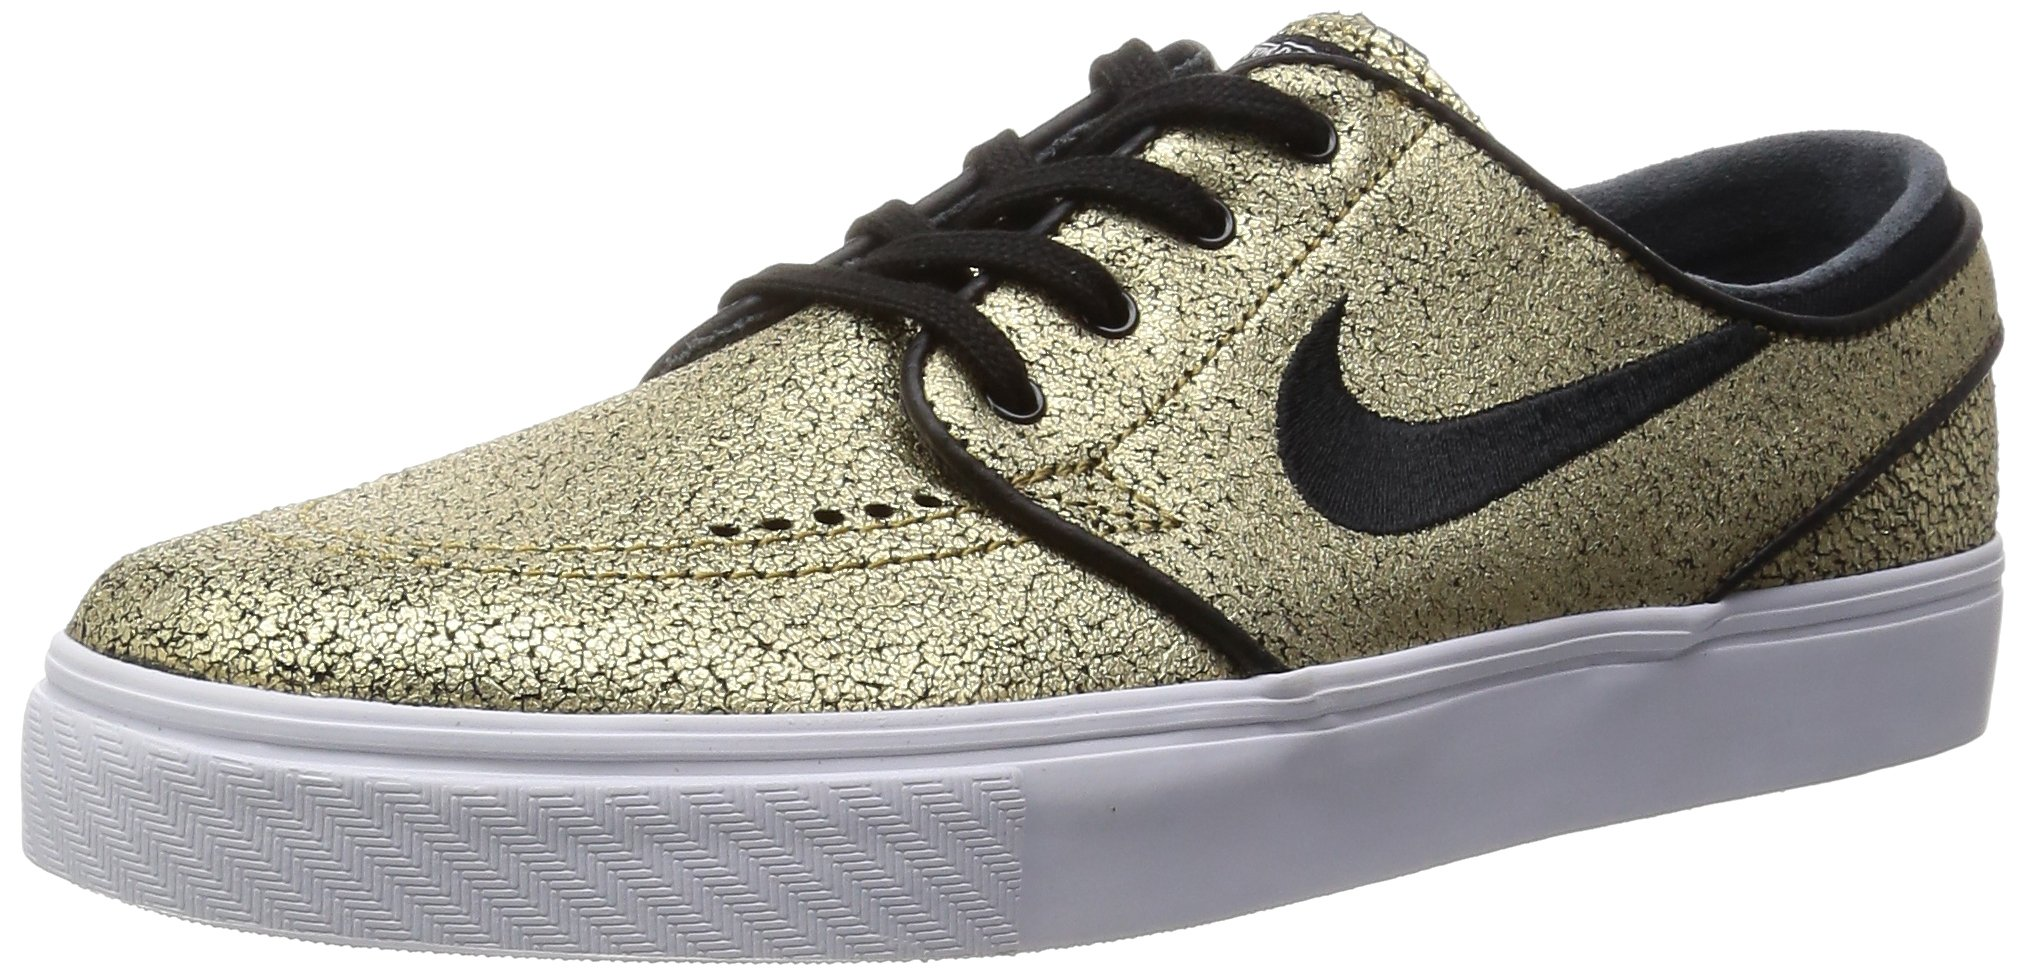 37f5417f24a1 Galleon - NIKE SB Zoom Stefan Janoski Leather Metallic Gold White Gum Light  Brown Black Skate Shoes-Men 8.5